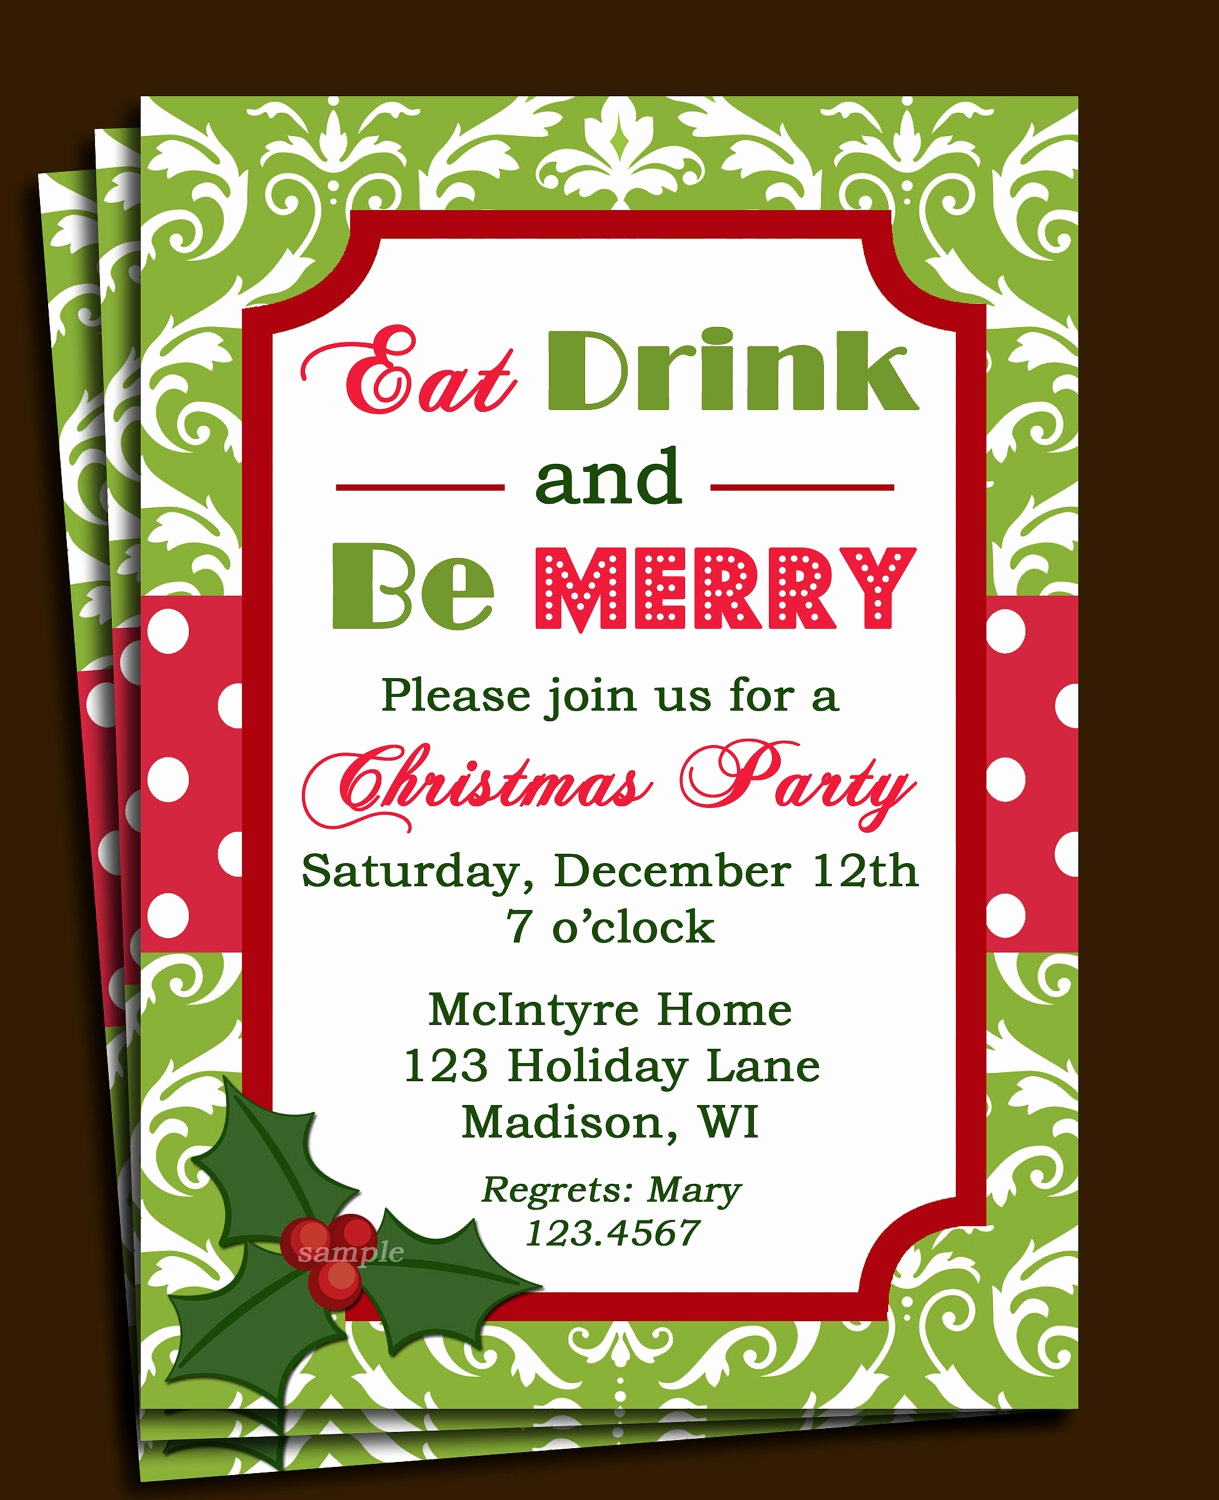 Christmas Party Invitation Ideas Unique Christmas Party Invitation Ideas